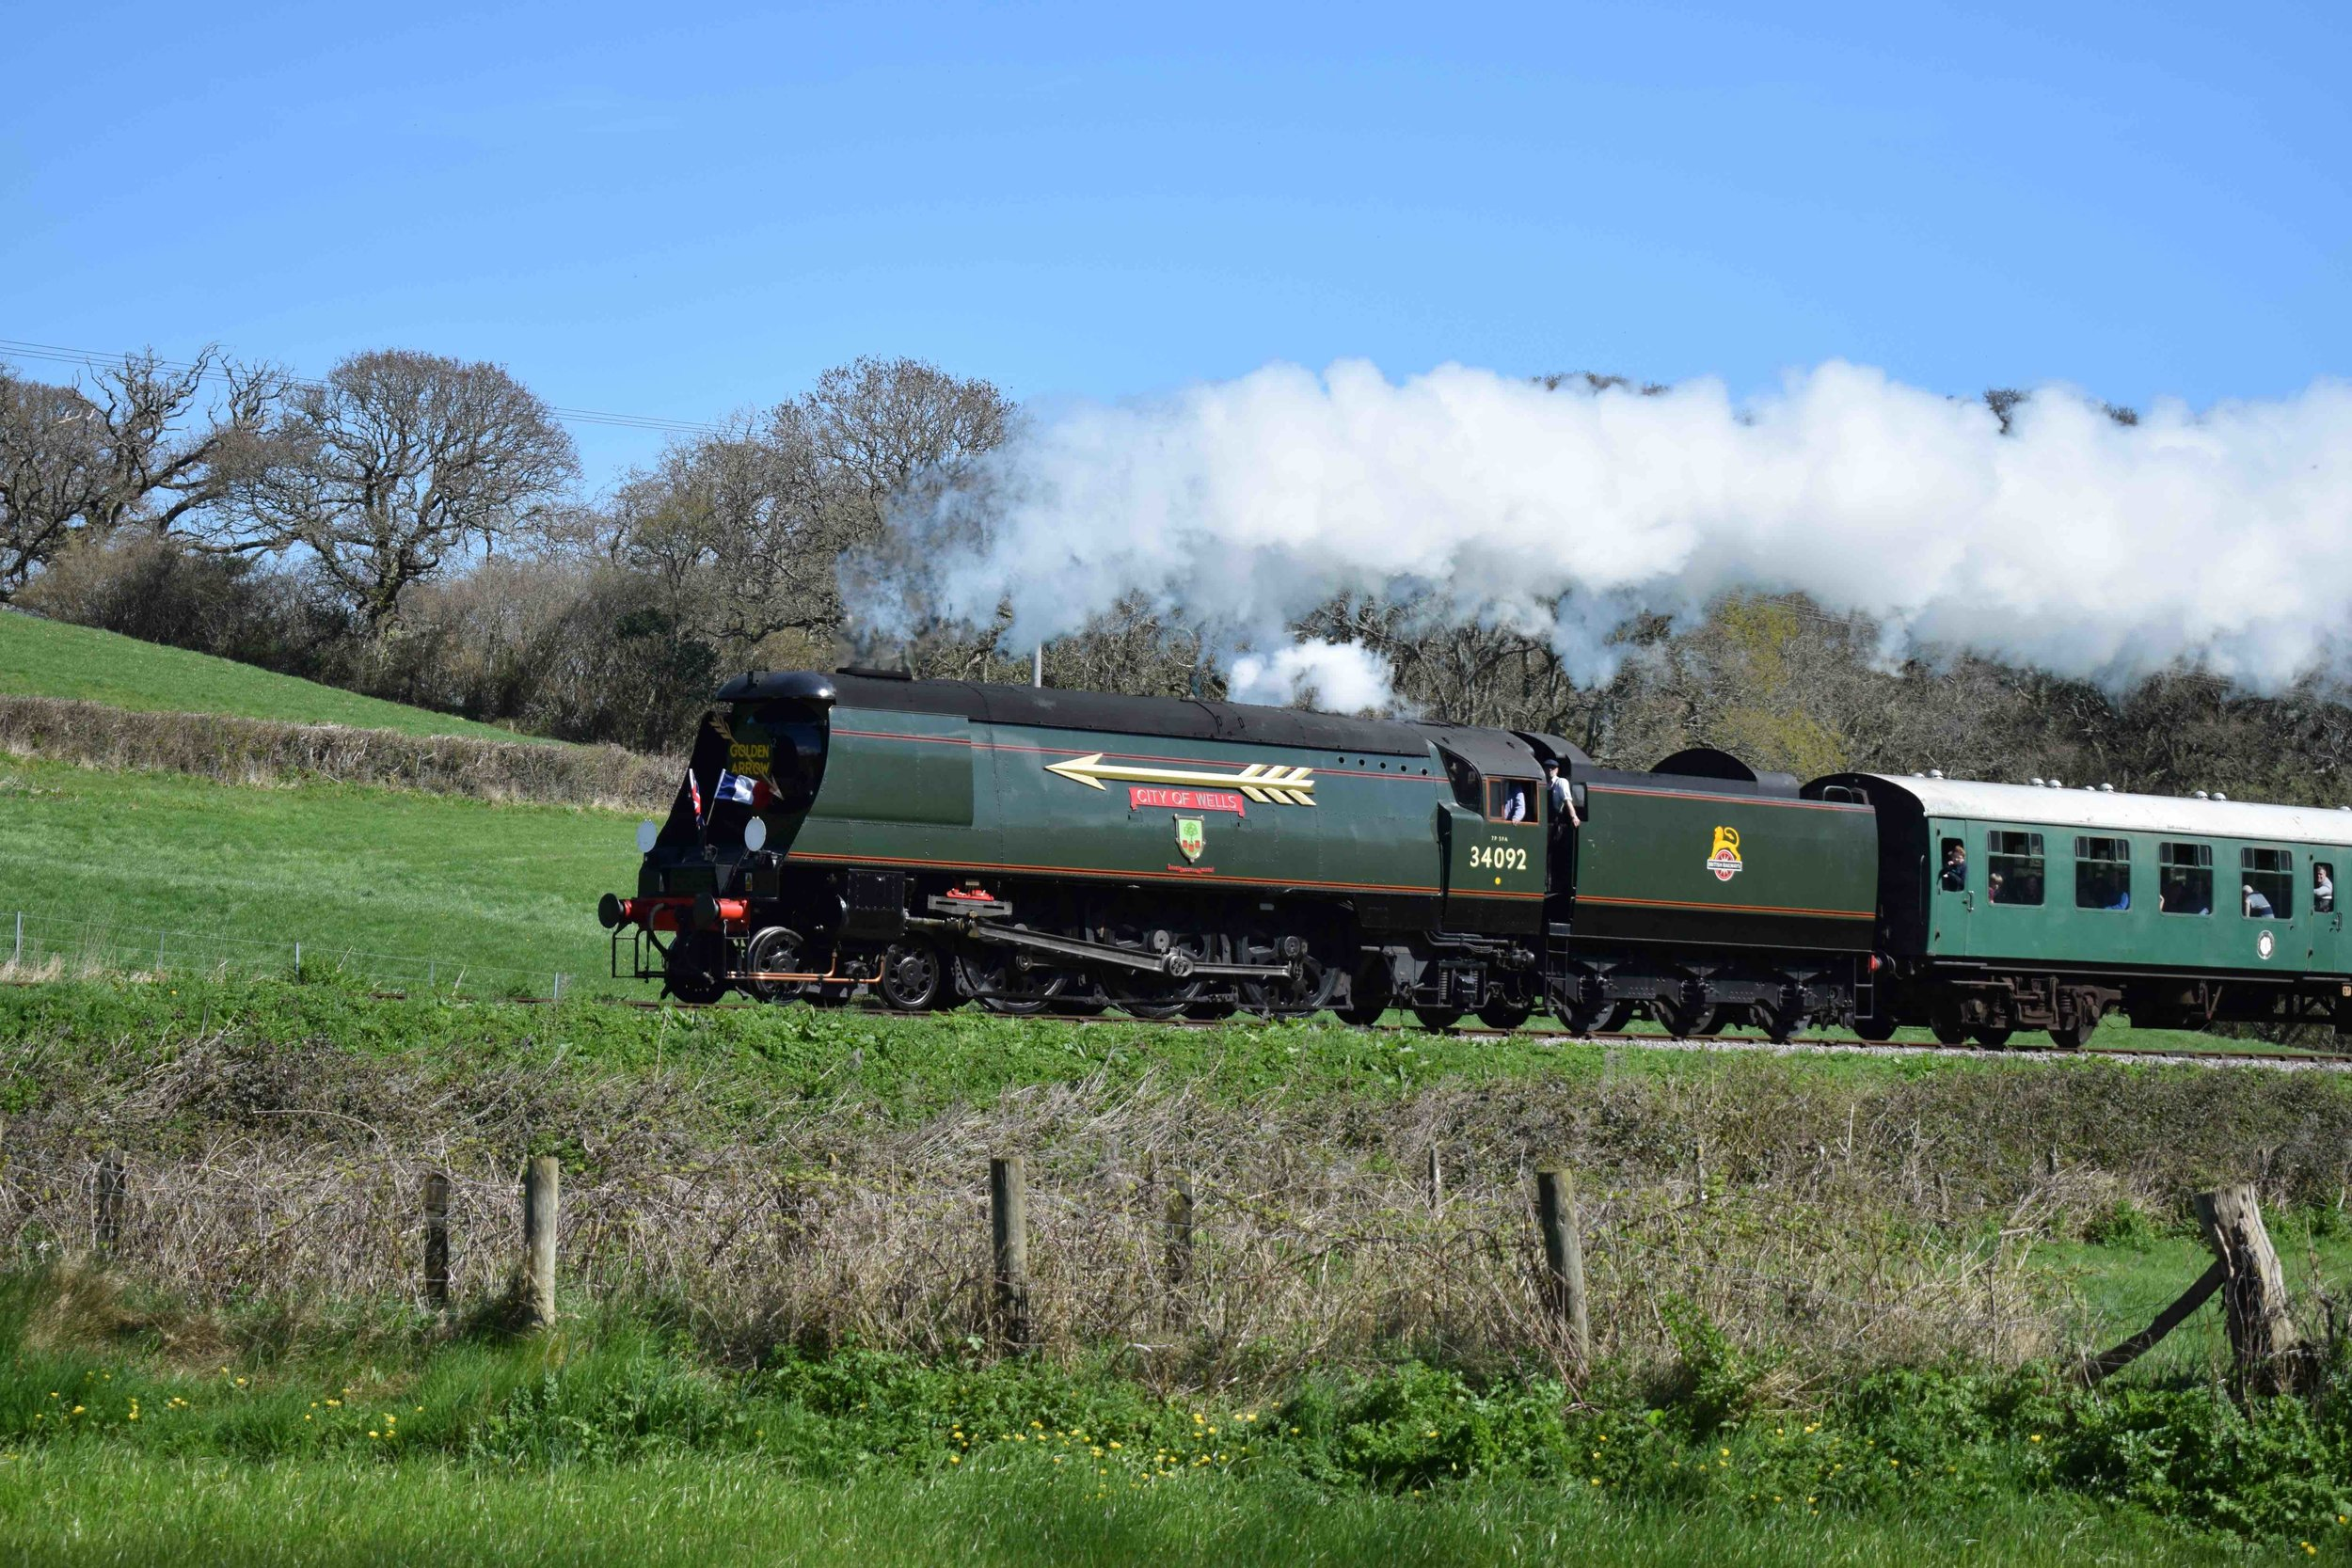 'West Country' No. 34092  City of Wells  climbs towards Harmans Cross at the Swanage Railway's 'Strictly Bulleid' gala on April 2 2017. THOMAS BRIGHT/SR